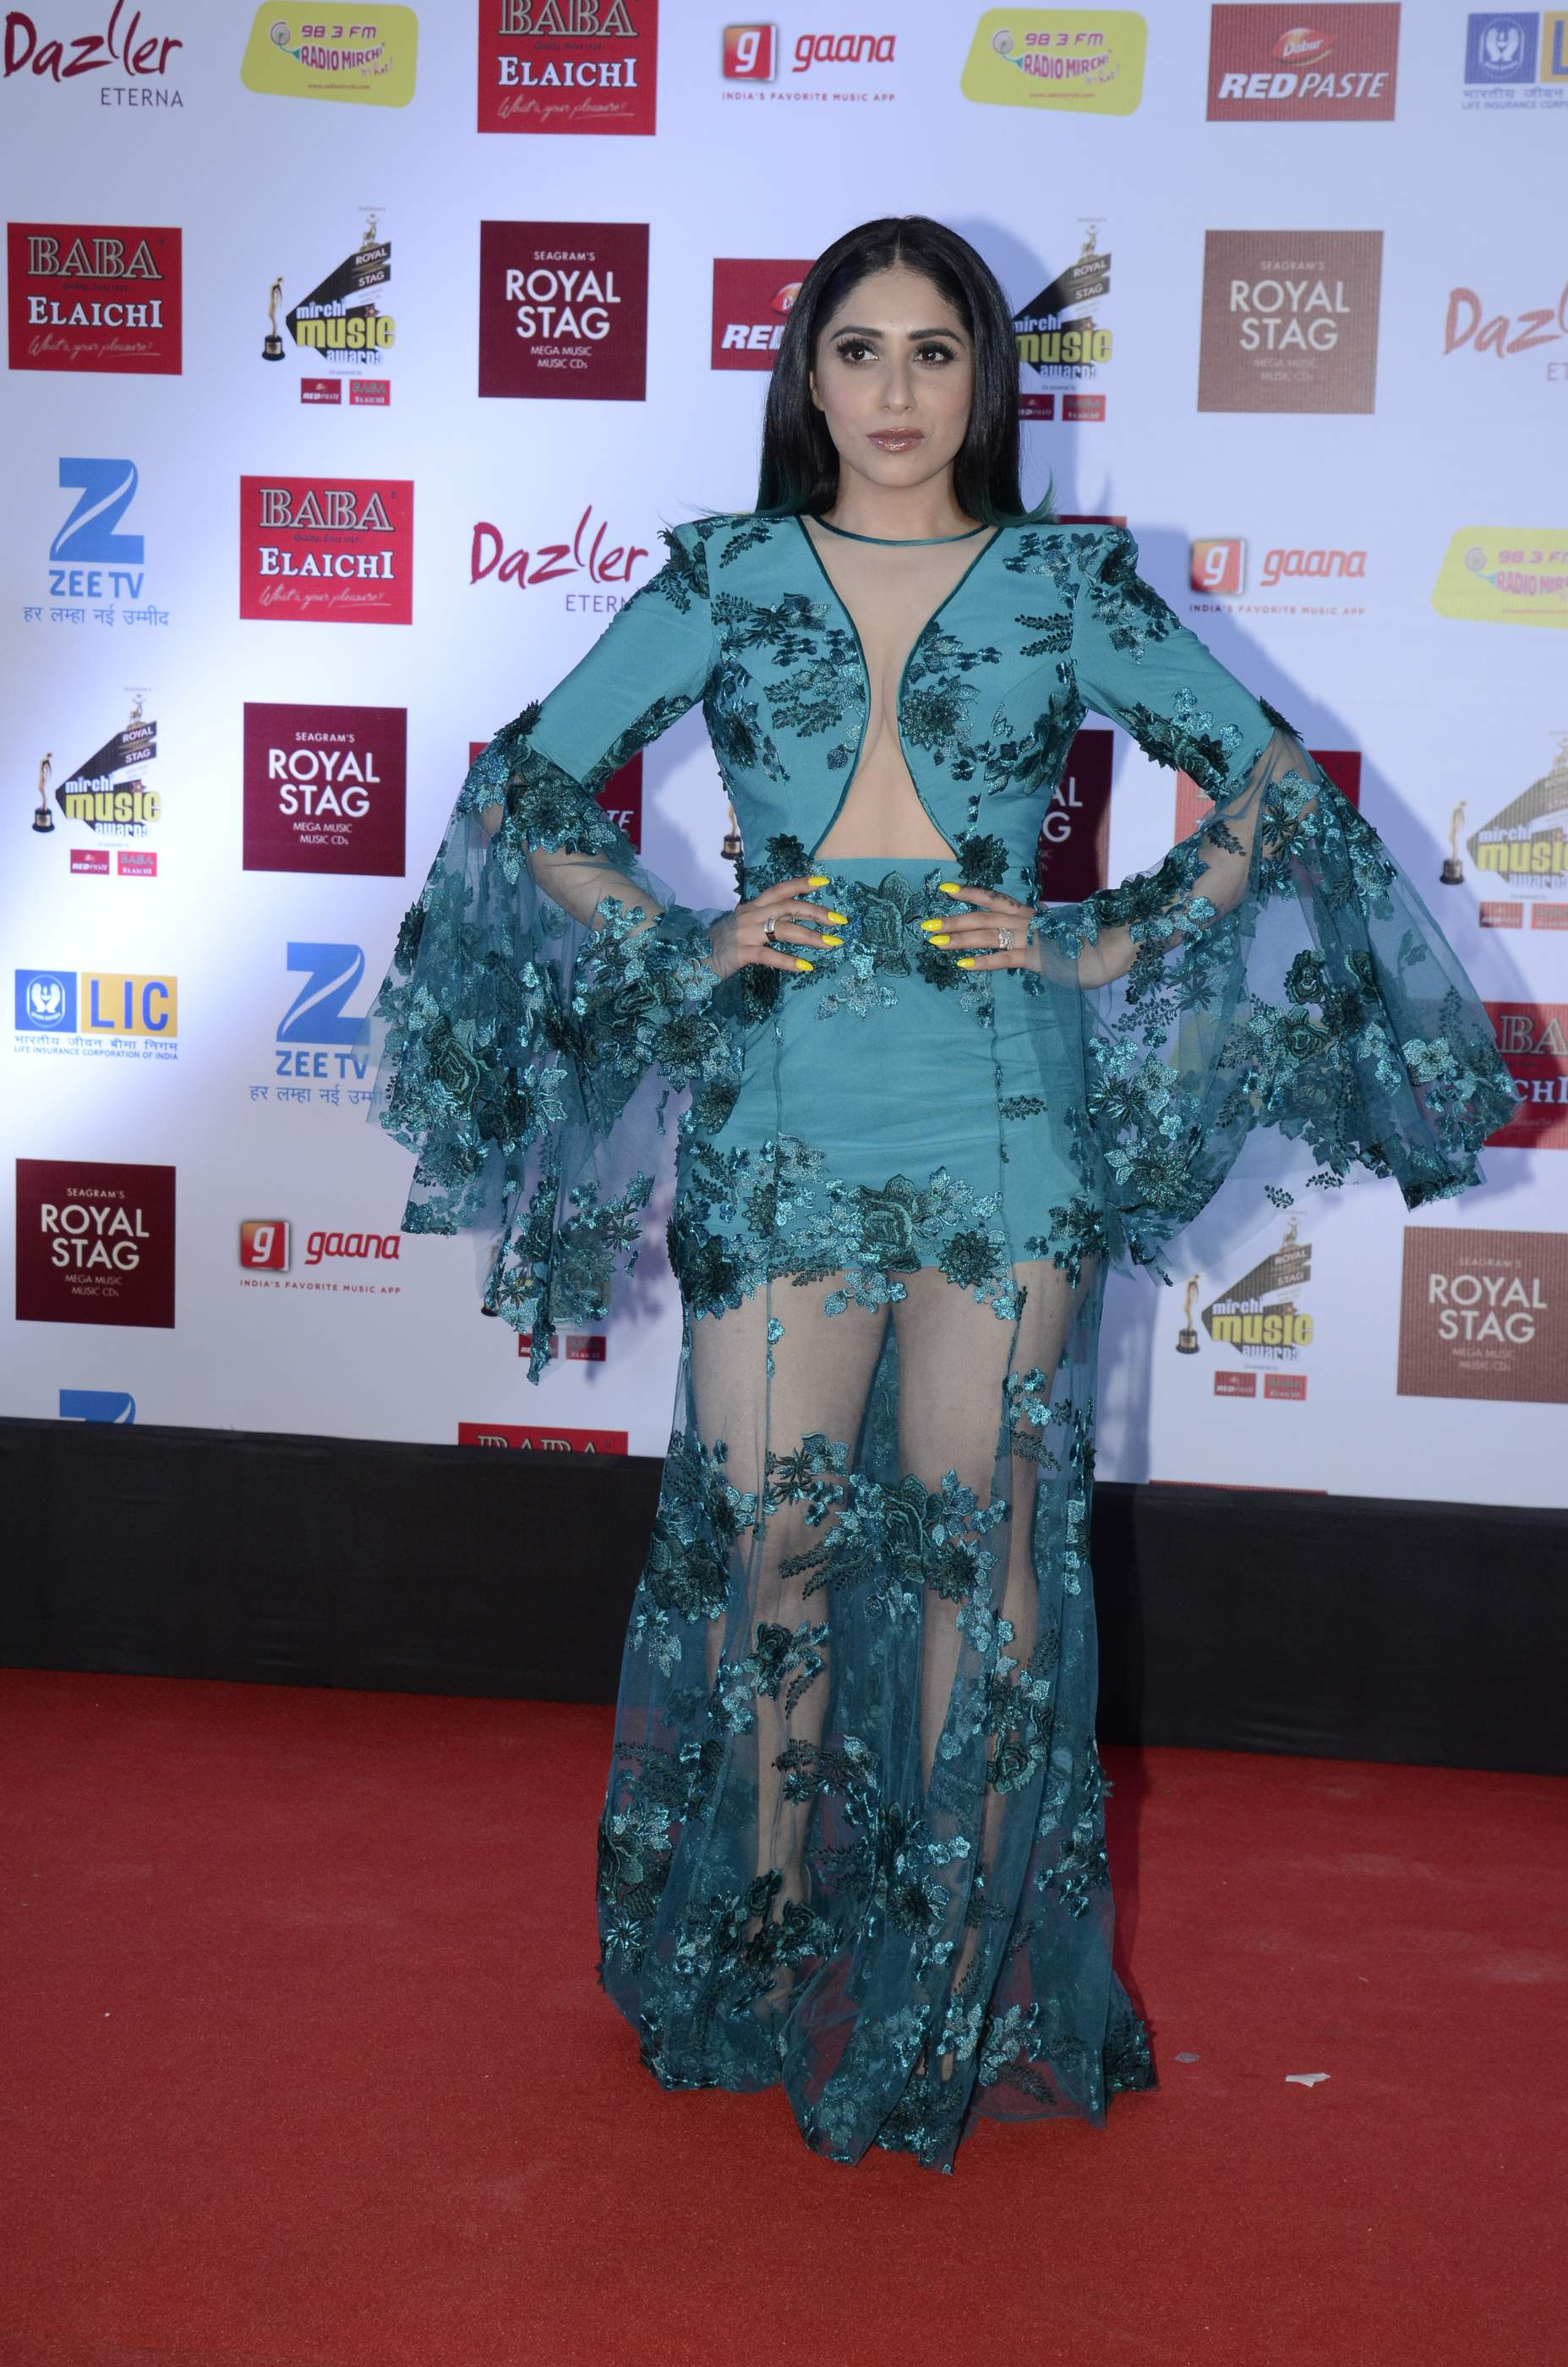 mirchi music HOT Celebs Dazzle At Mirchi Music Awards Event | Models | Actresses Radio Mirchi Awards Red Carpet 8